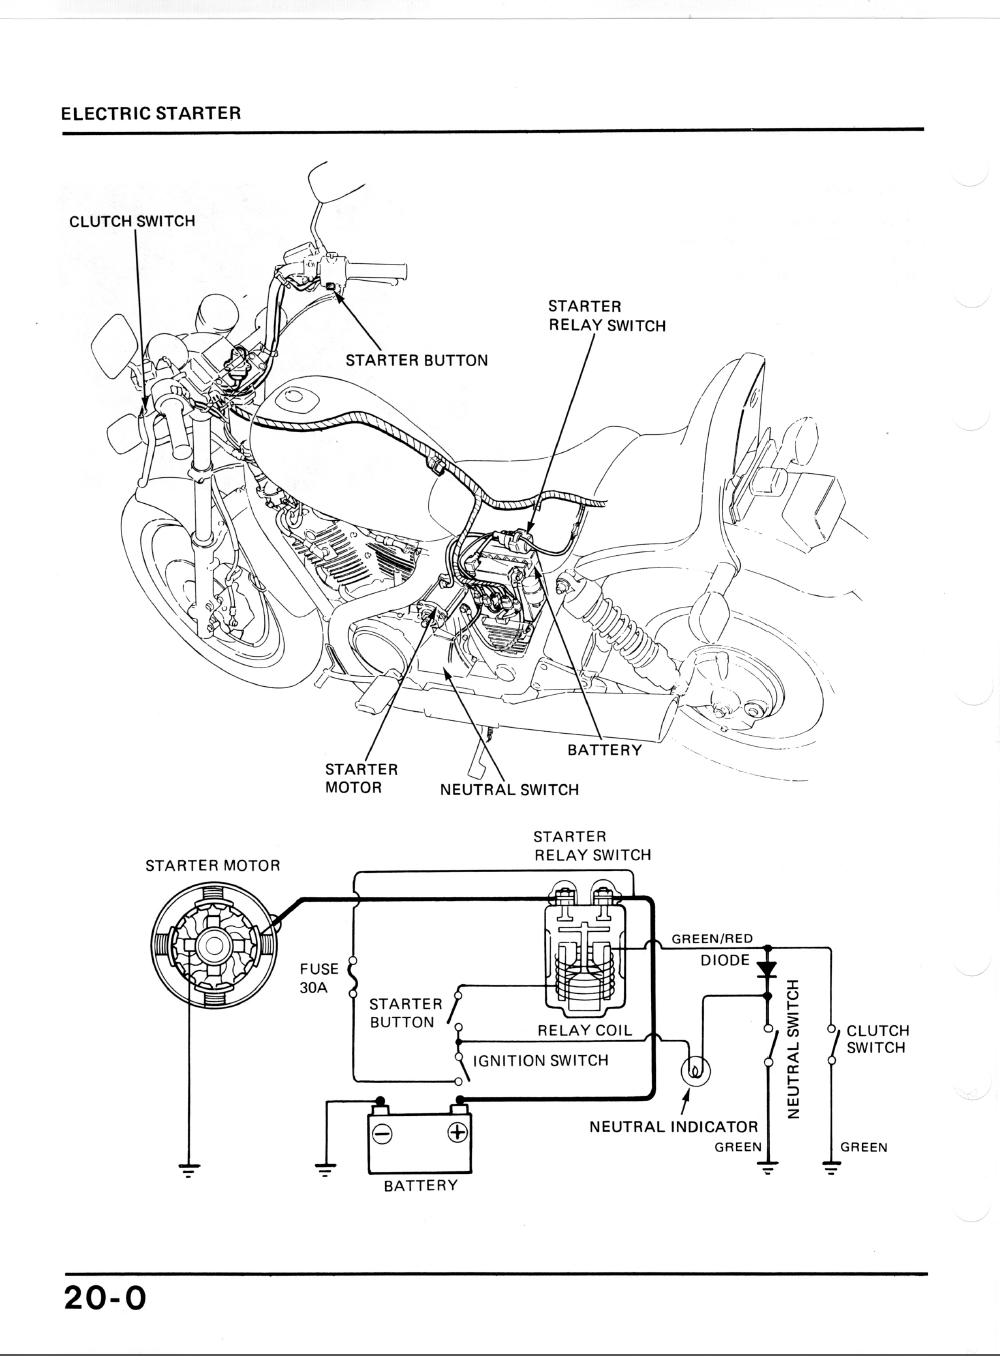 1984 honda shadow vt700 wiring diagram